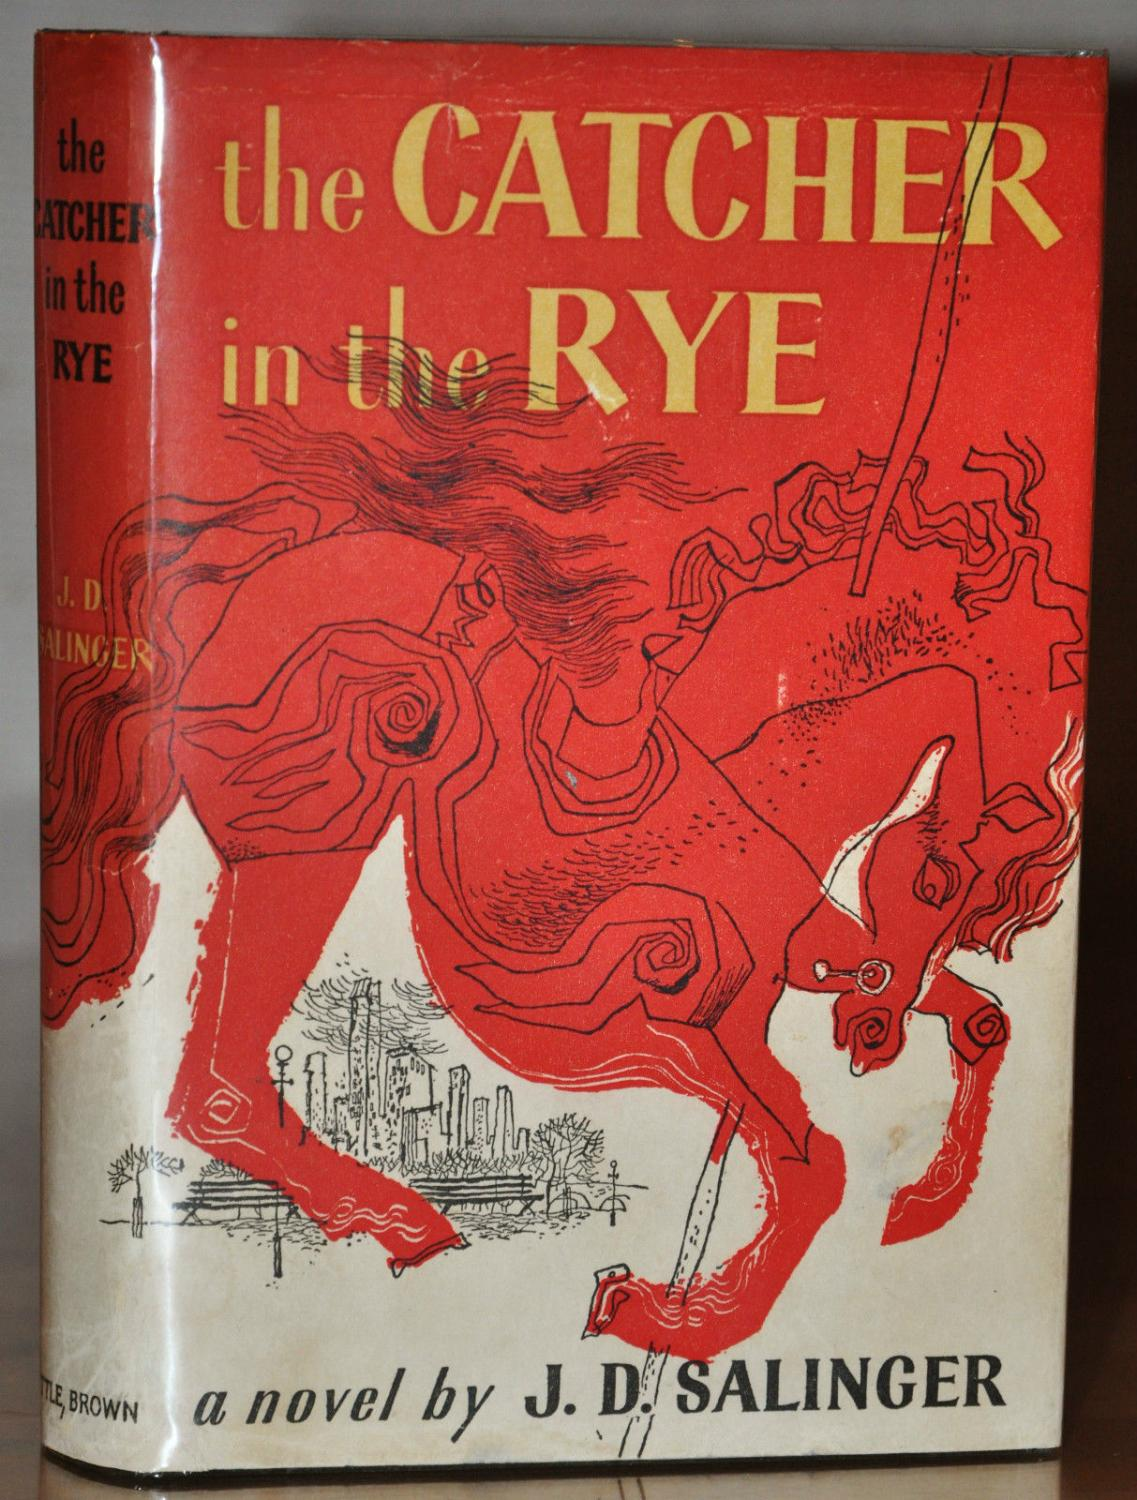 the catcher in the rye by j. d. salinger essay The theme of catcher in the rye by jd salinger in the novel catcher in the rye by jd salinger, the protagonist holden caulifield views the world as an evil corrupt place where there is no peace holden has a phony phobia that restricts him from becoming a fully matured adult.